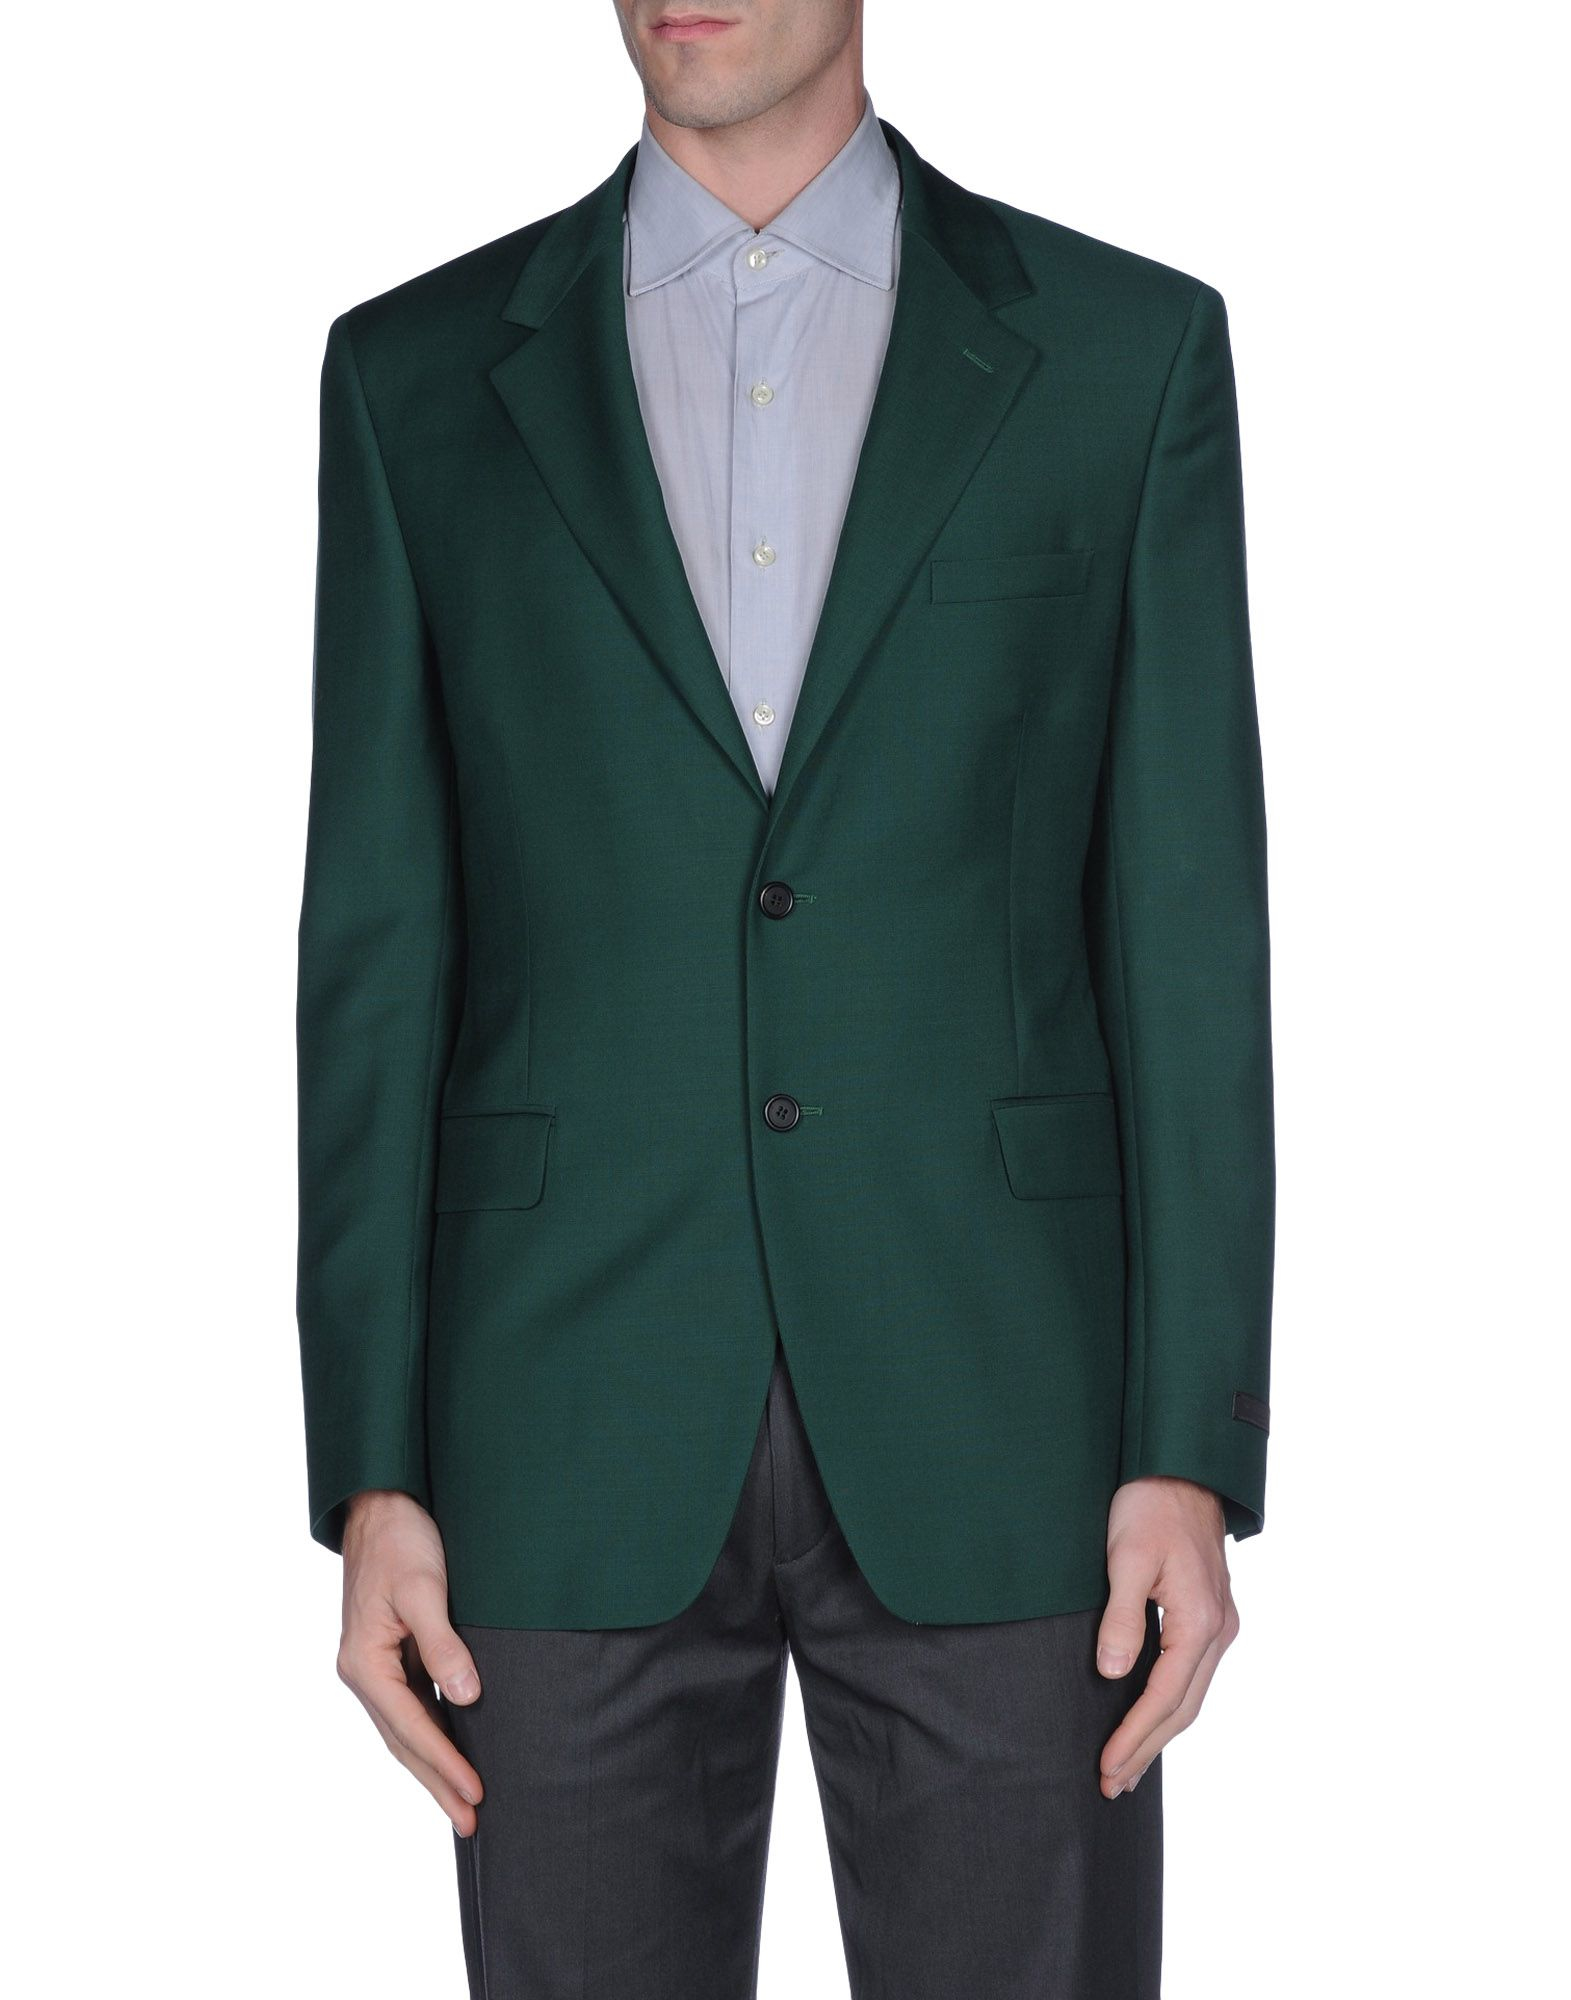 Prada blazer in green for men lyst Emerald green mens dress shirt